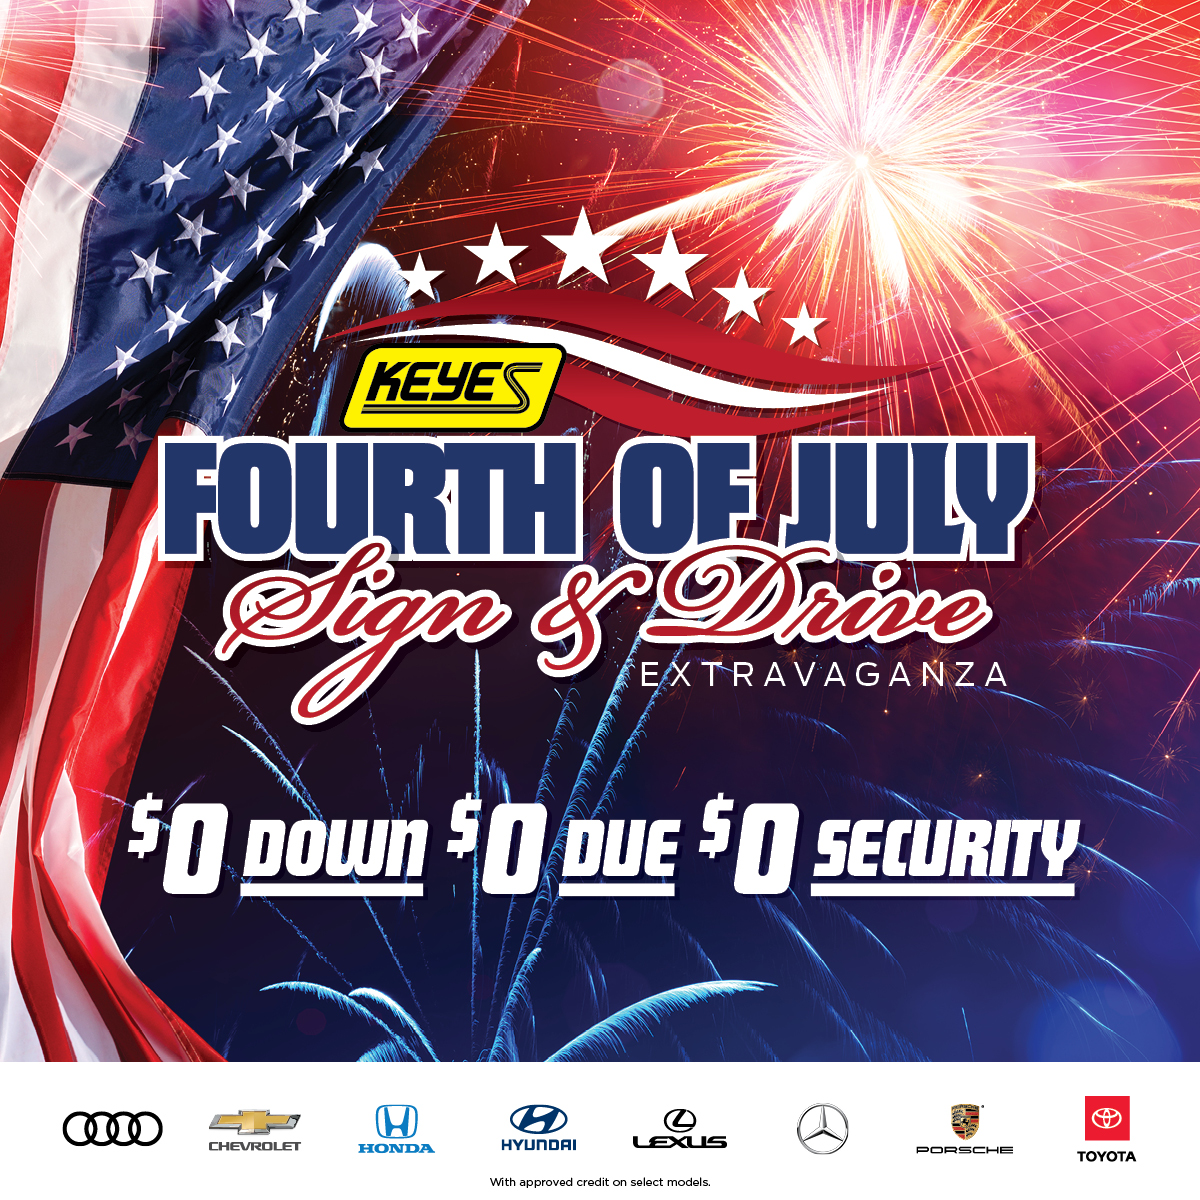 Ready for a new ride?  Check out @keyescars 4th of July Sign & Drive Extravaganza. Keyes is Everywhere with 12 Locations! $0 DOWN! $0 DUE! $0 SECURITY! Visit https://t.co/TSd0eSyeRY #ad https://t.co/XOpdhBLHqT